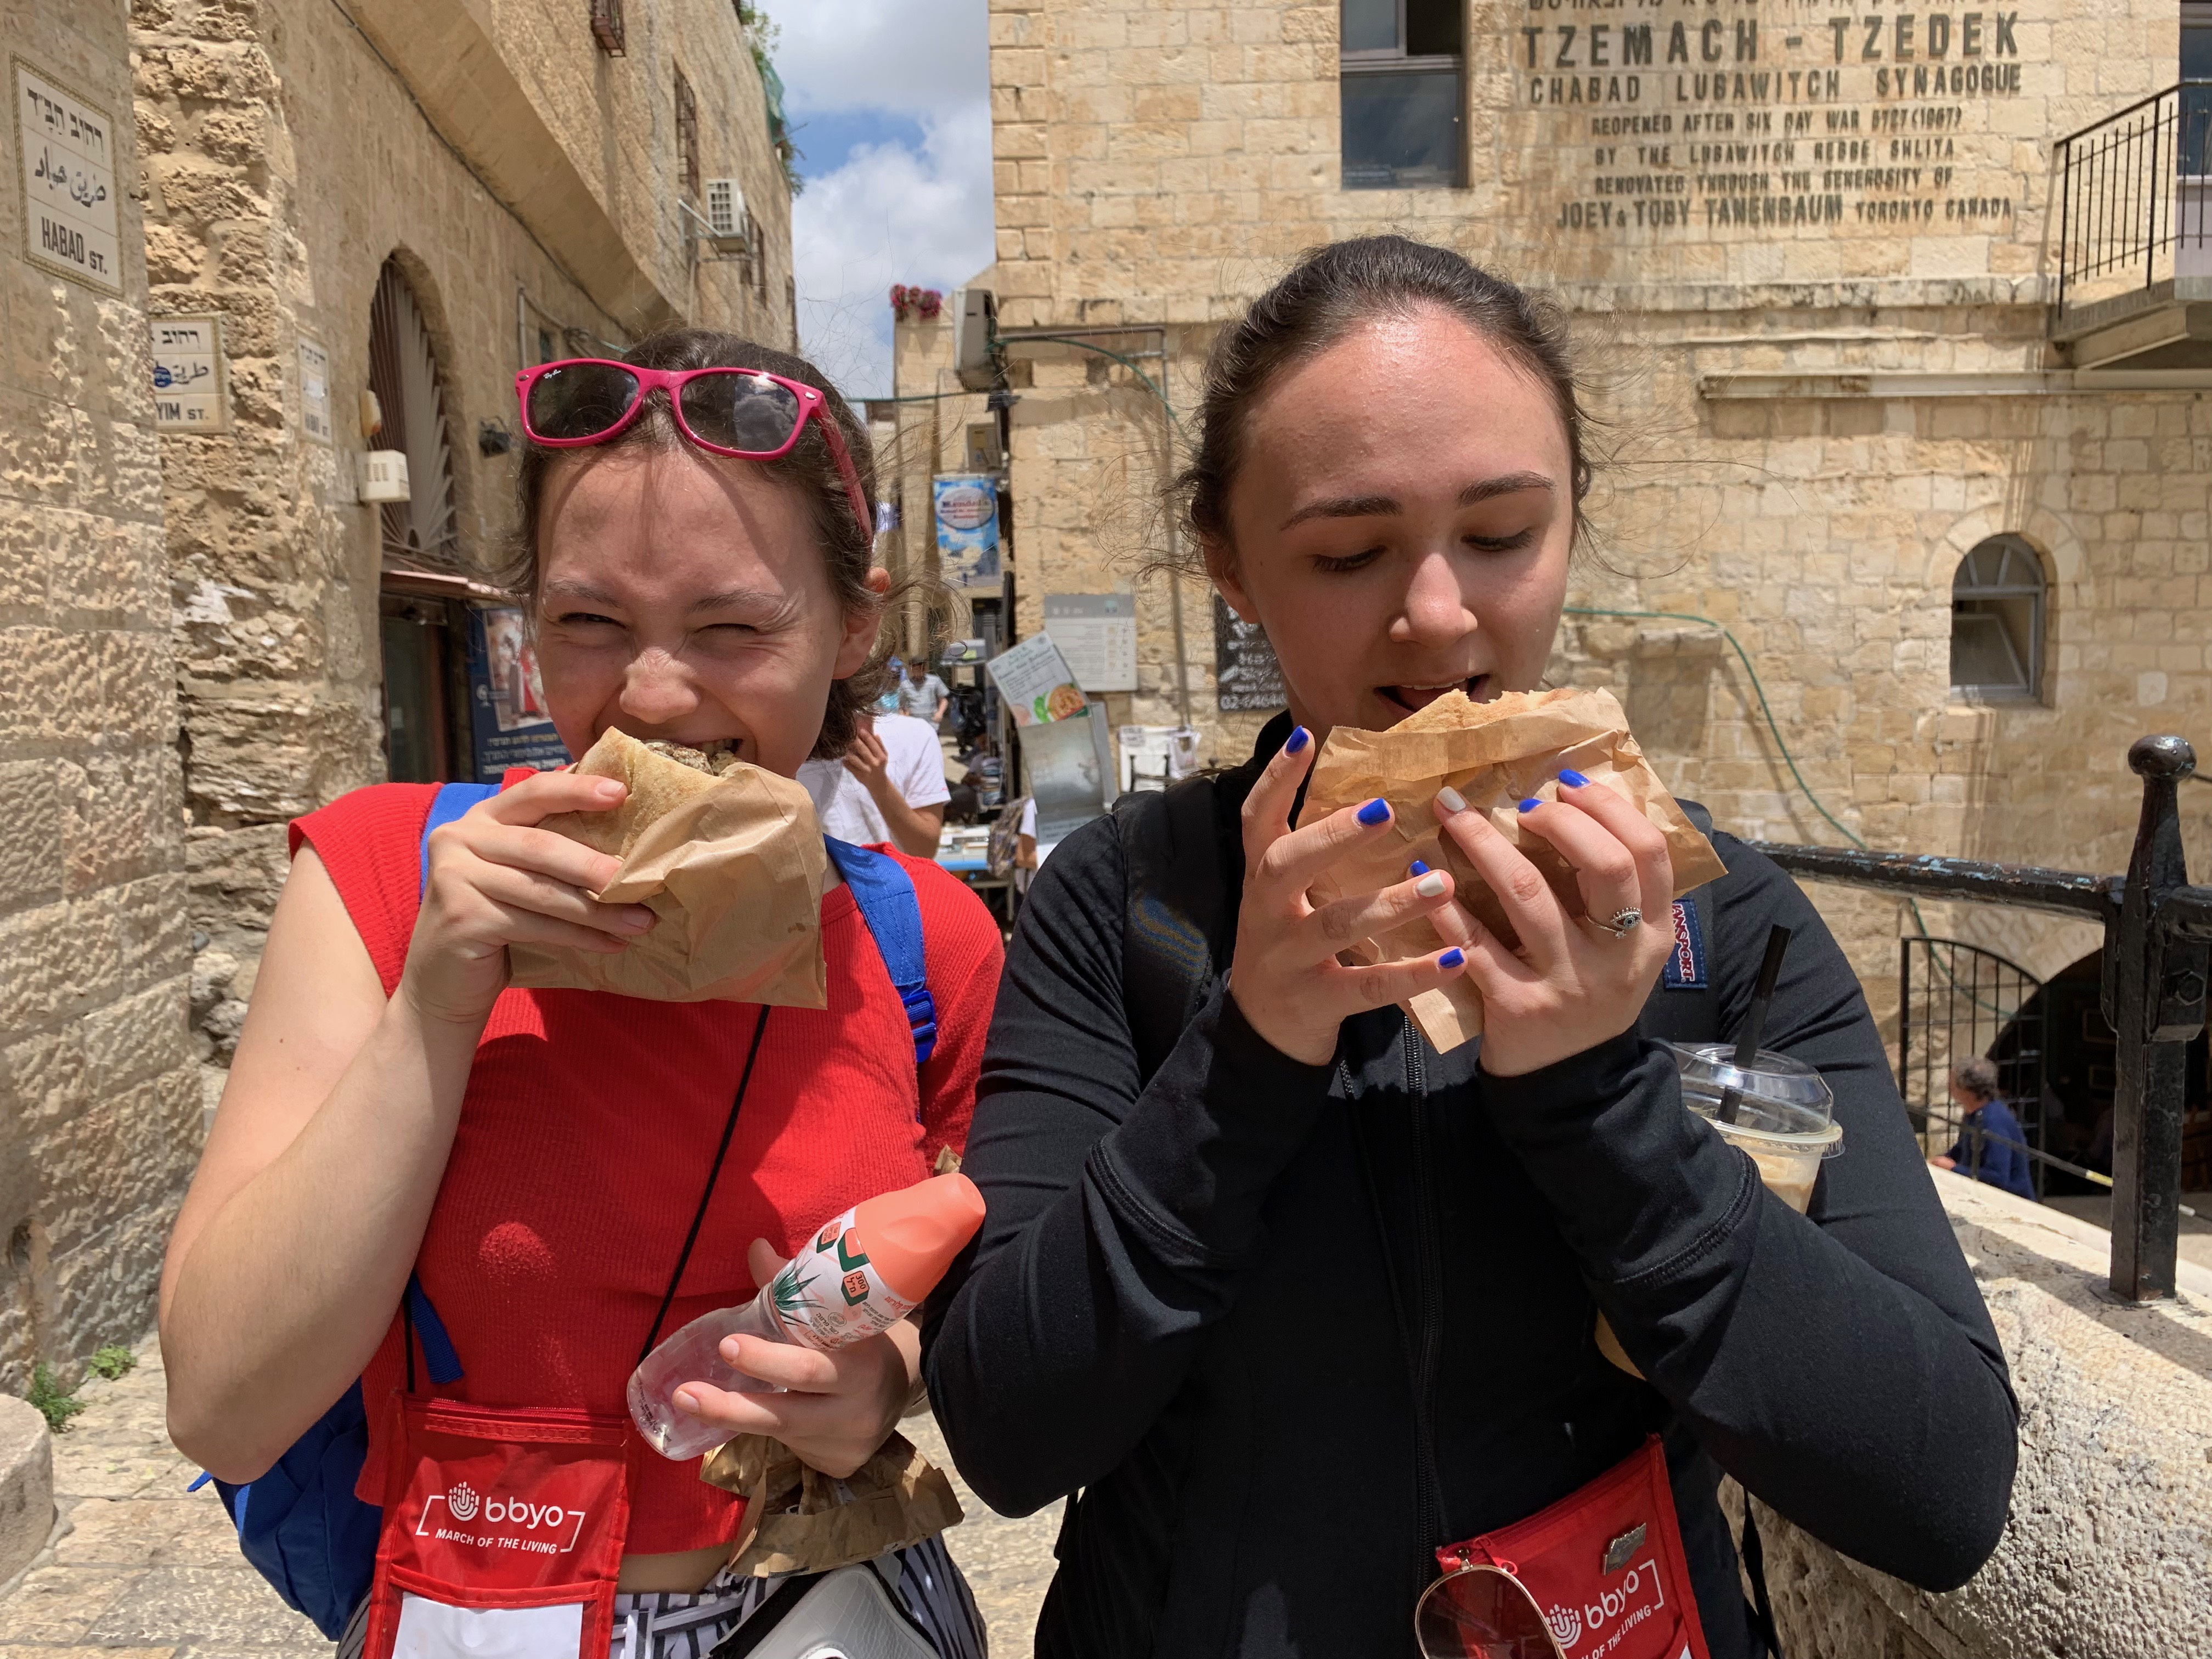 Ulrike Shragge (right) eating hummus with a friend in Jerusalem, summer 2019